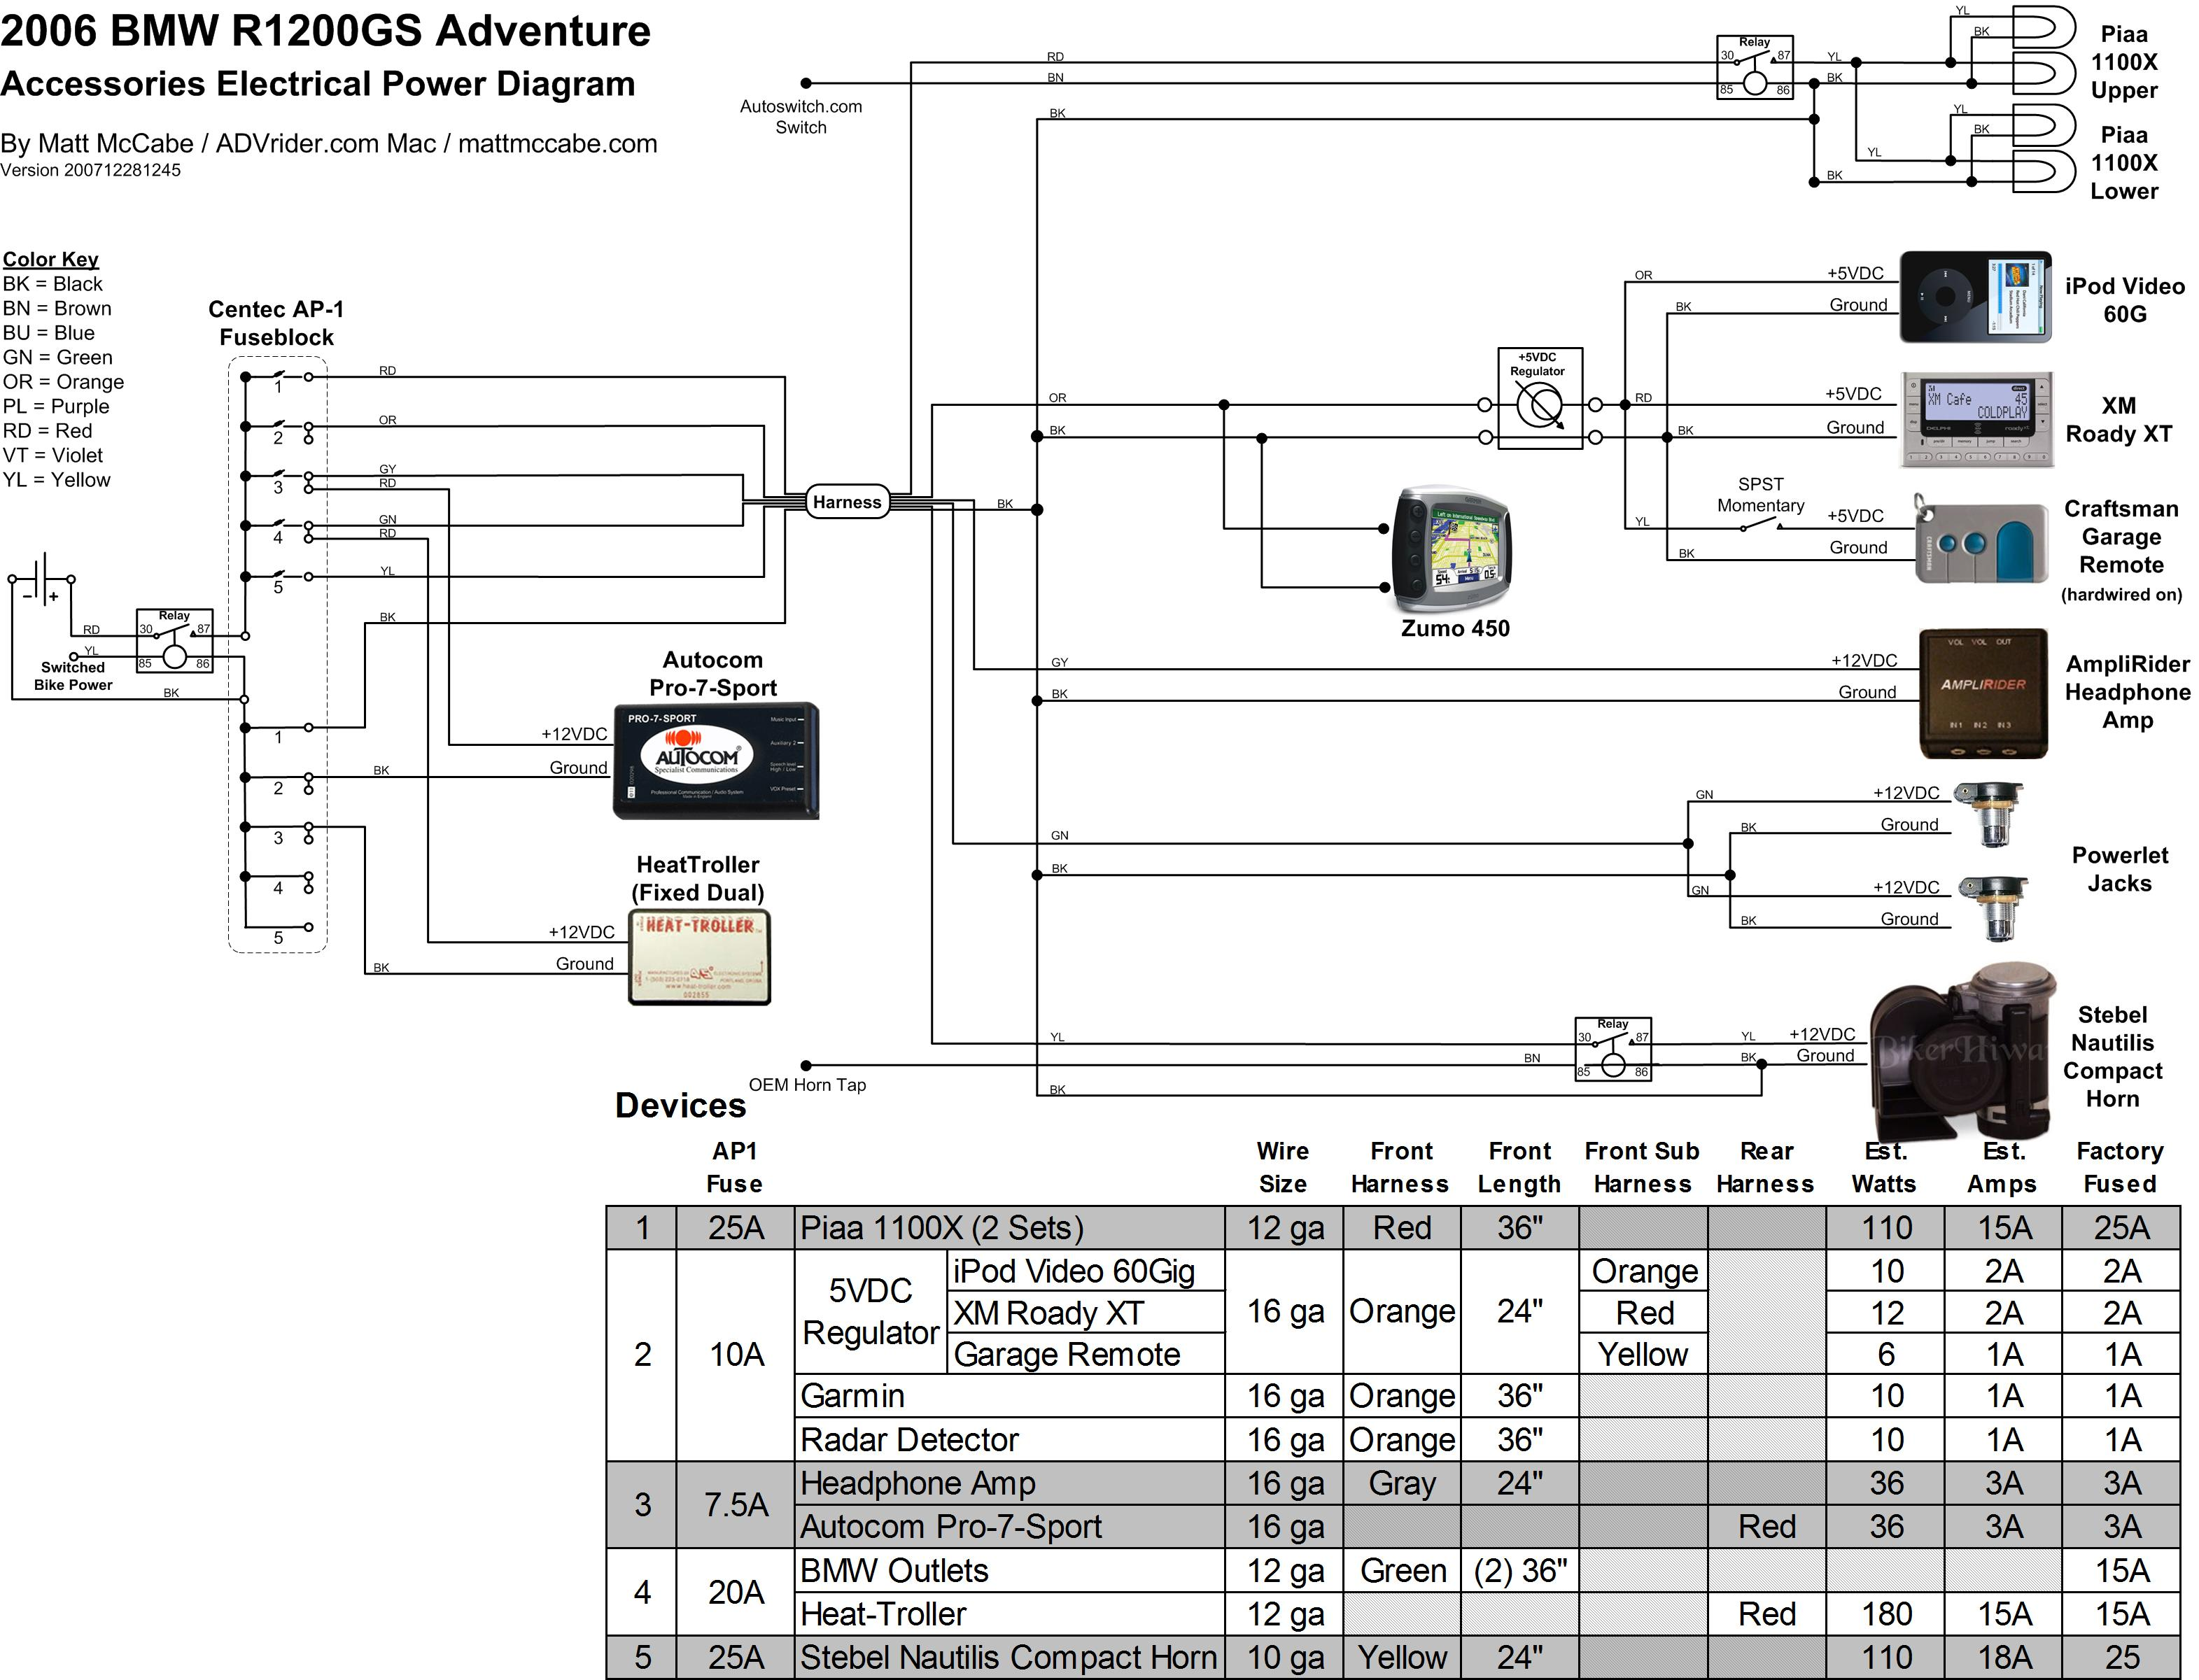 BMW_R1200GSAdv_Accessories_Wiring_Diagram_Version_200712281245_McCabe share someone school me on the centech fuse box please adventure rider bmw gs 1200 fuse box location at bakdesigns.co